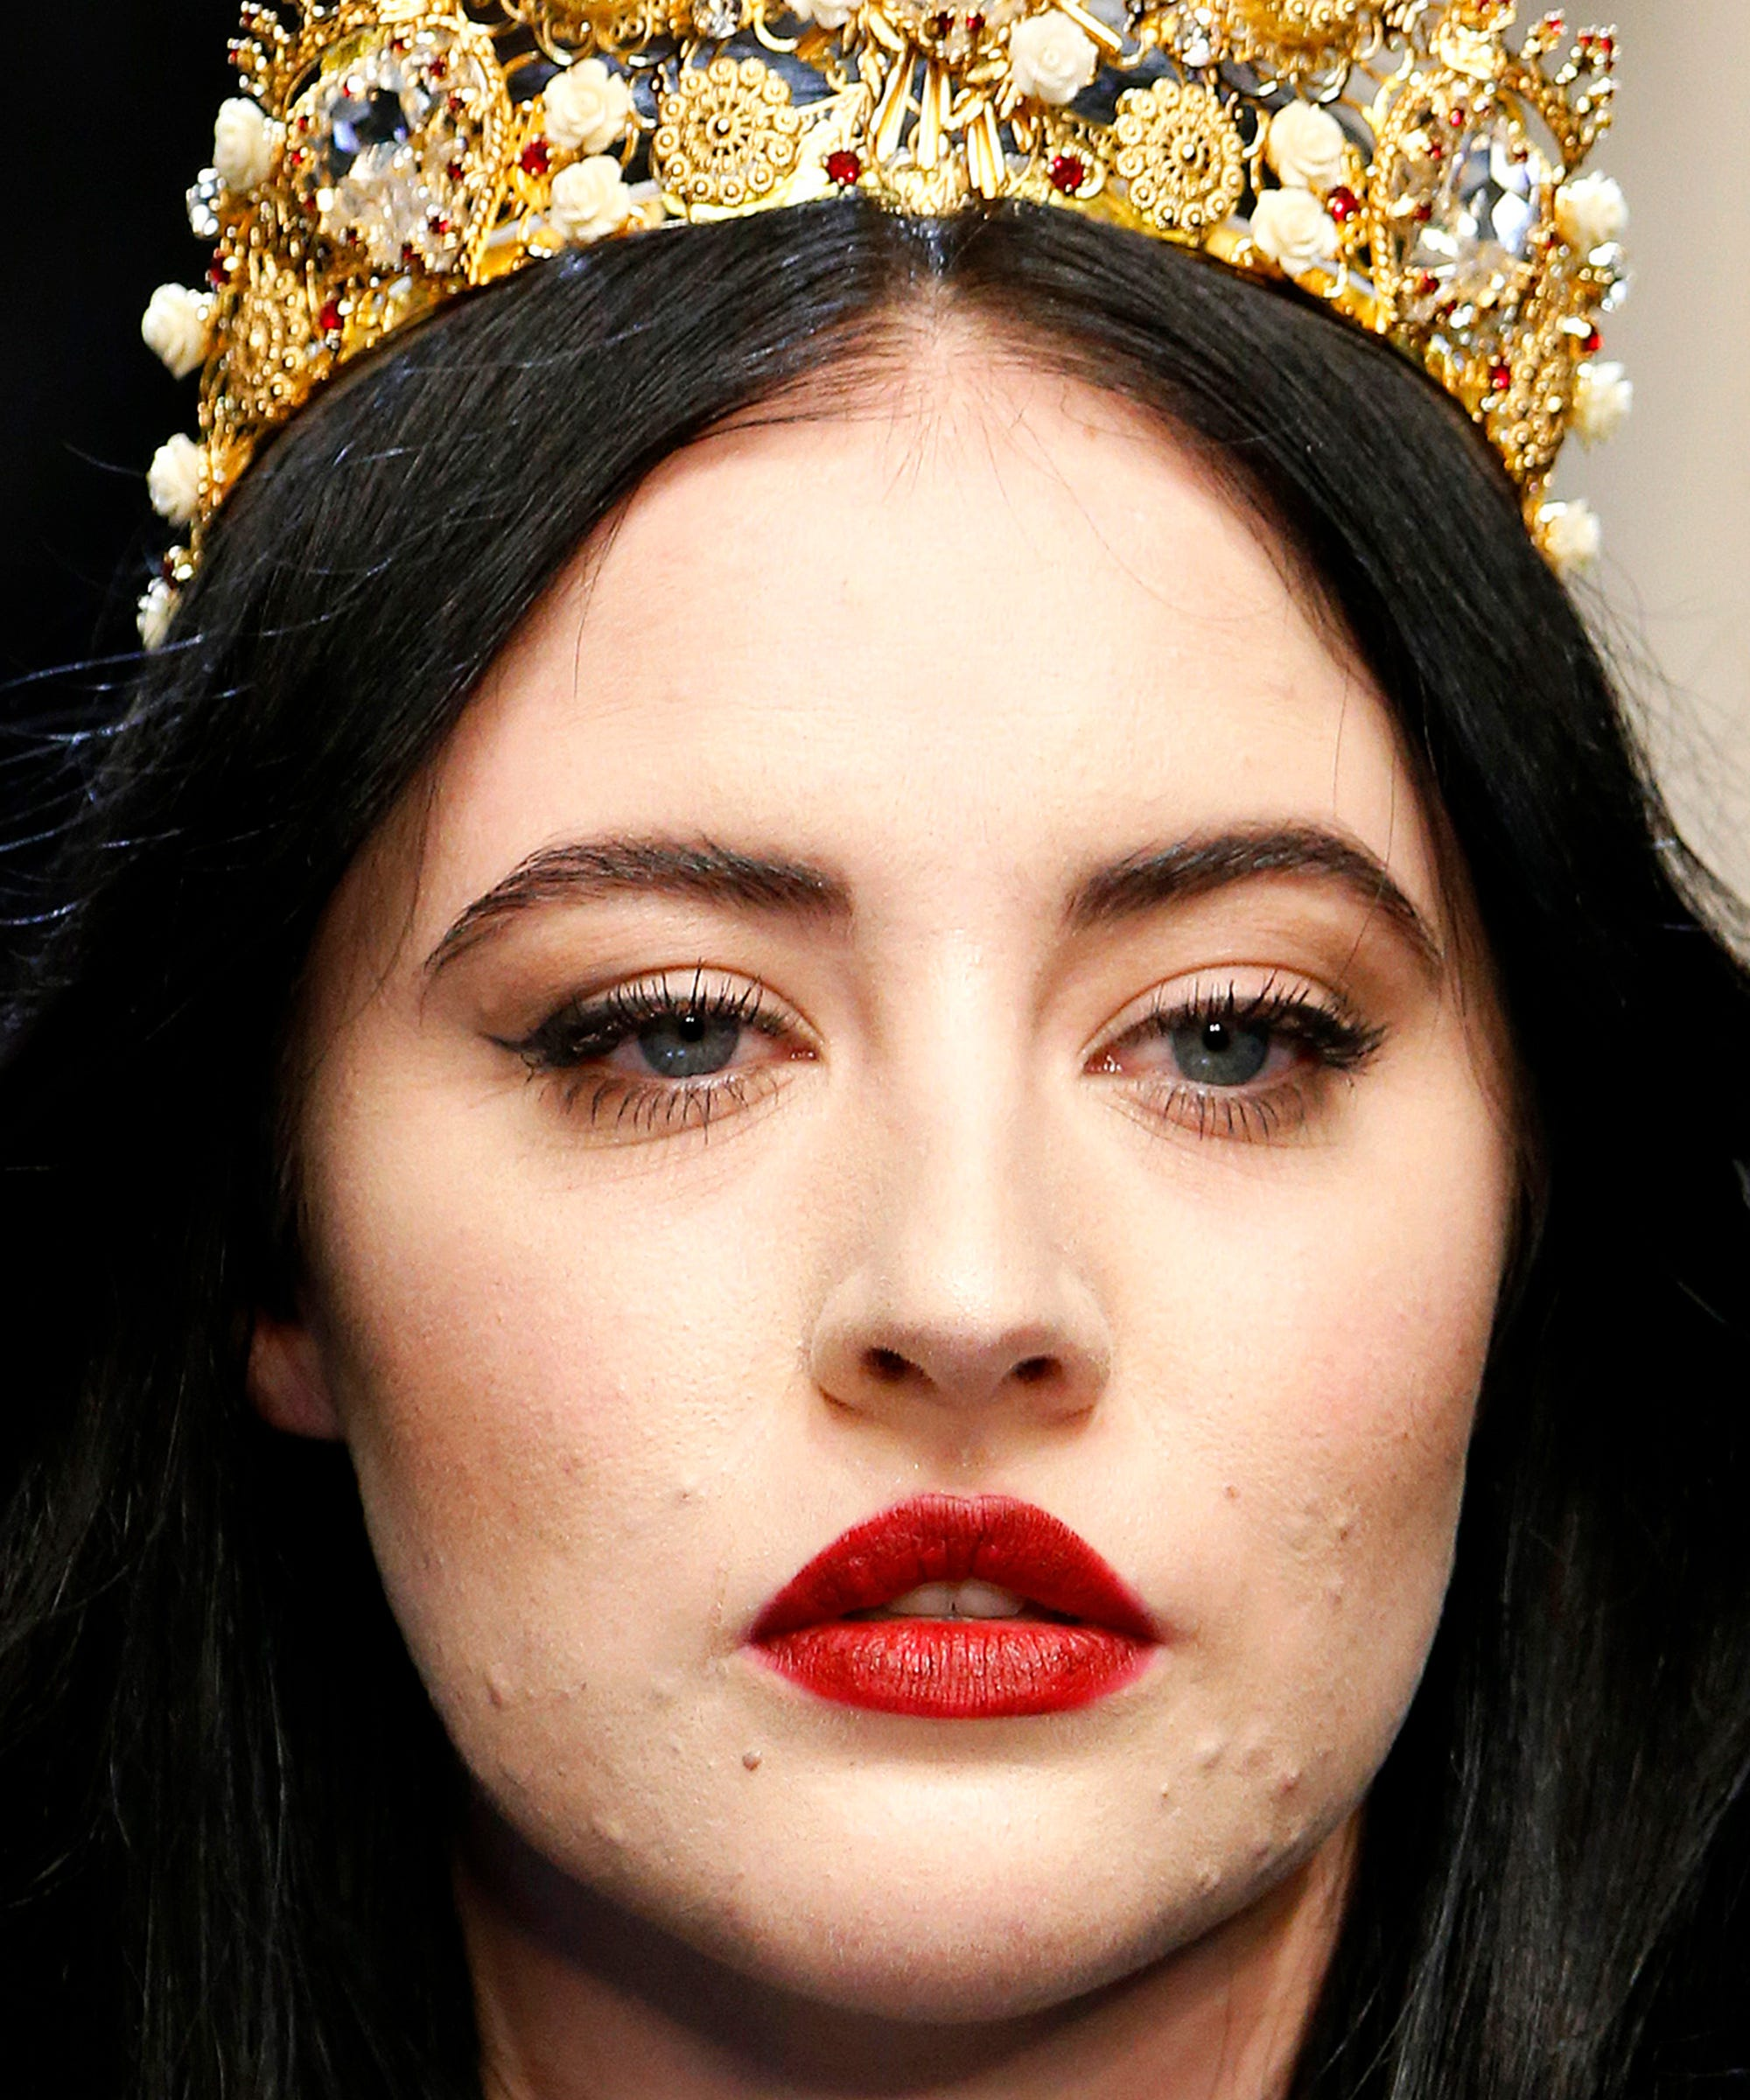 Image result for starlie smith dolce and gabbana acne